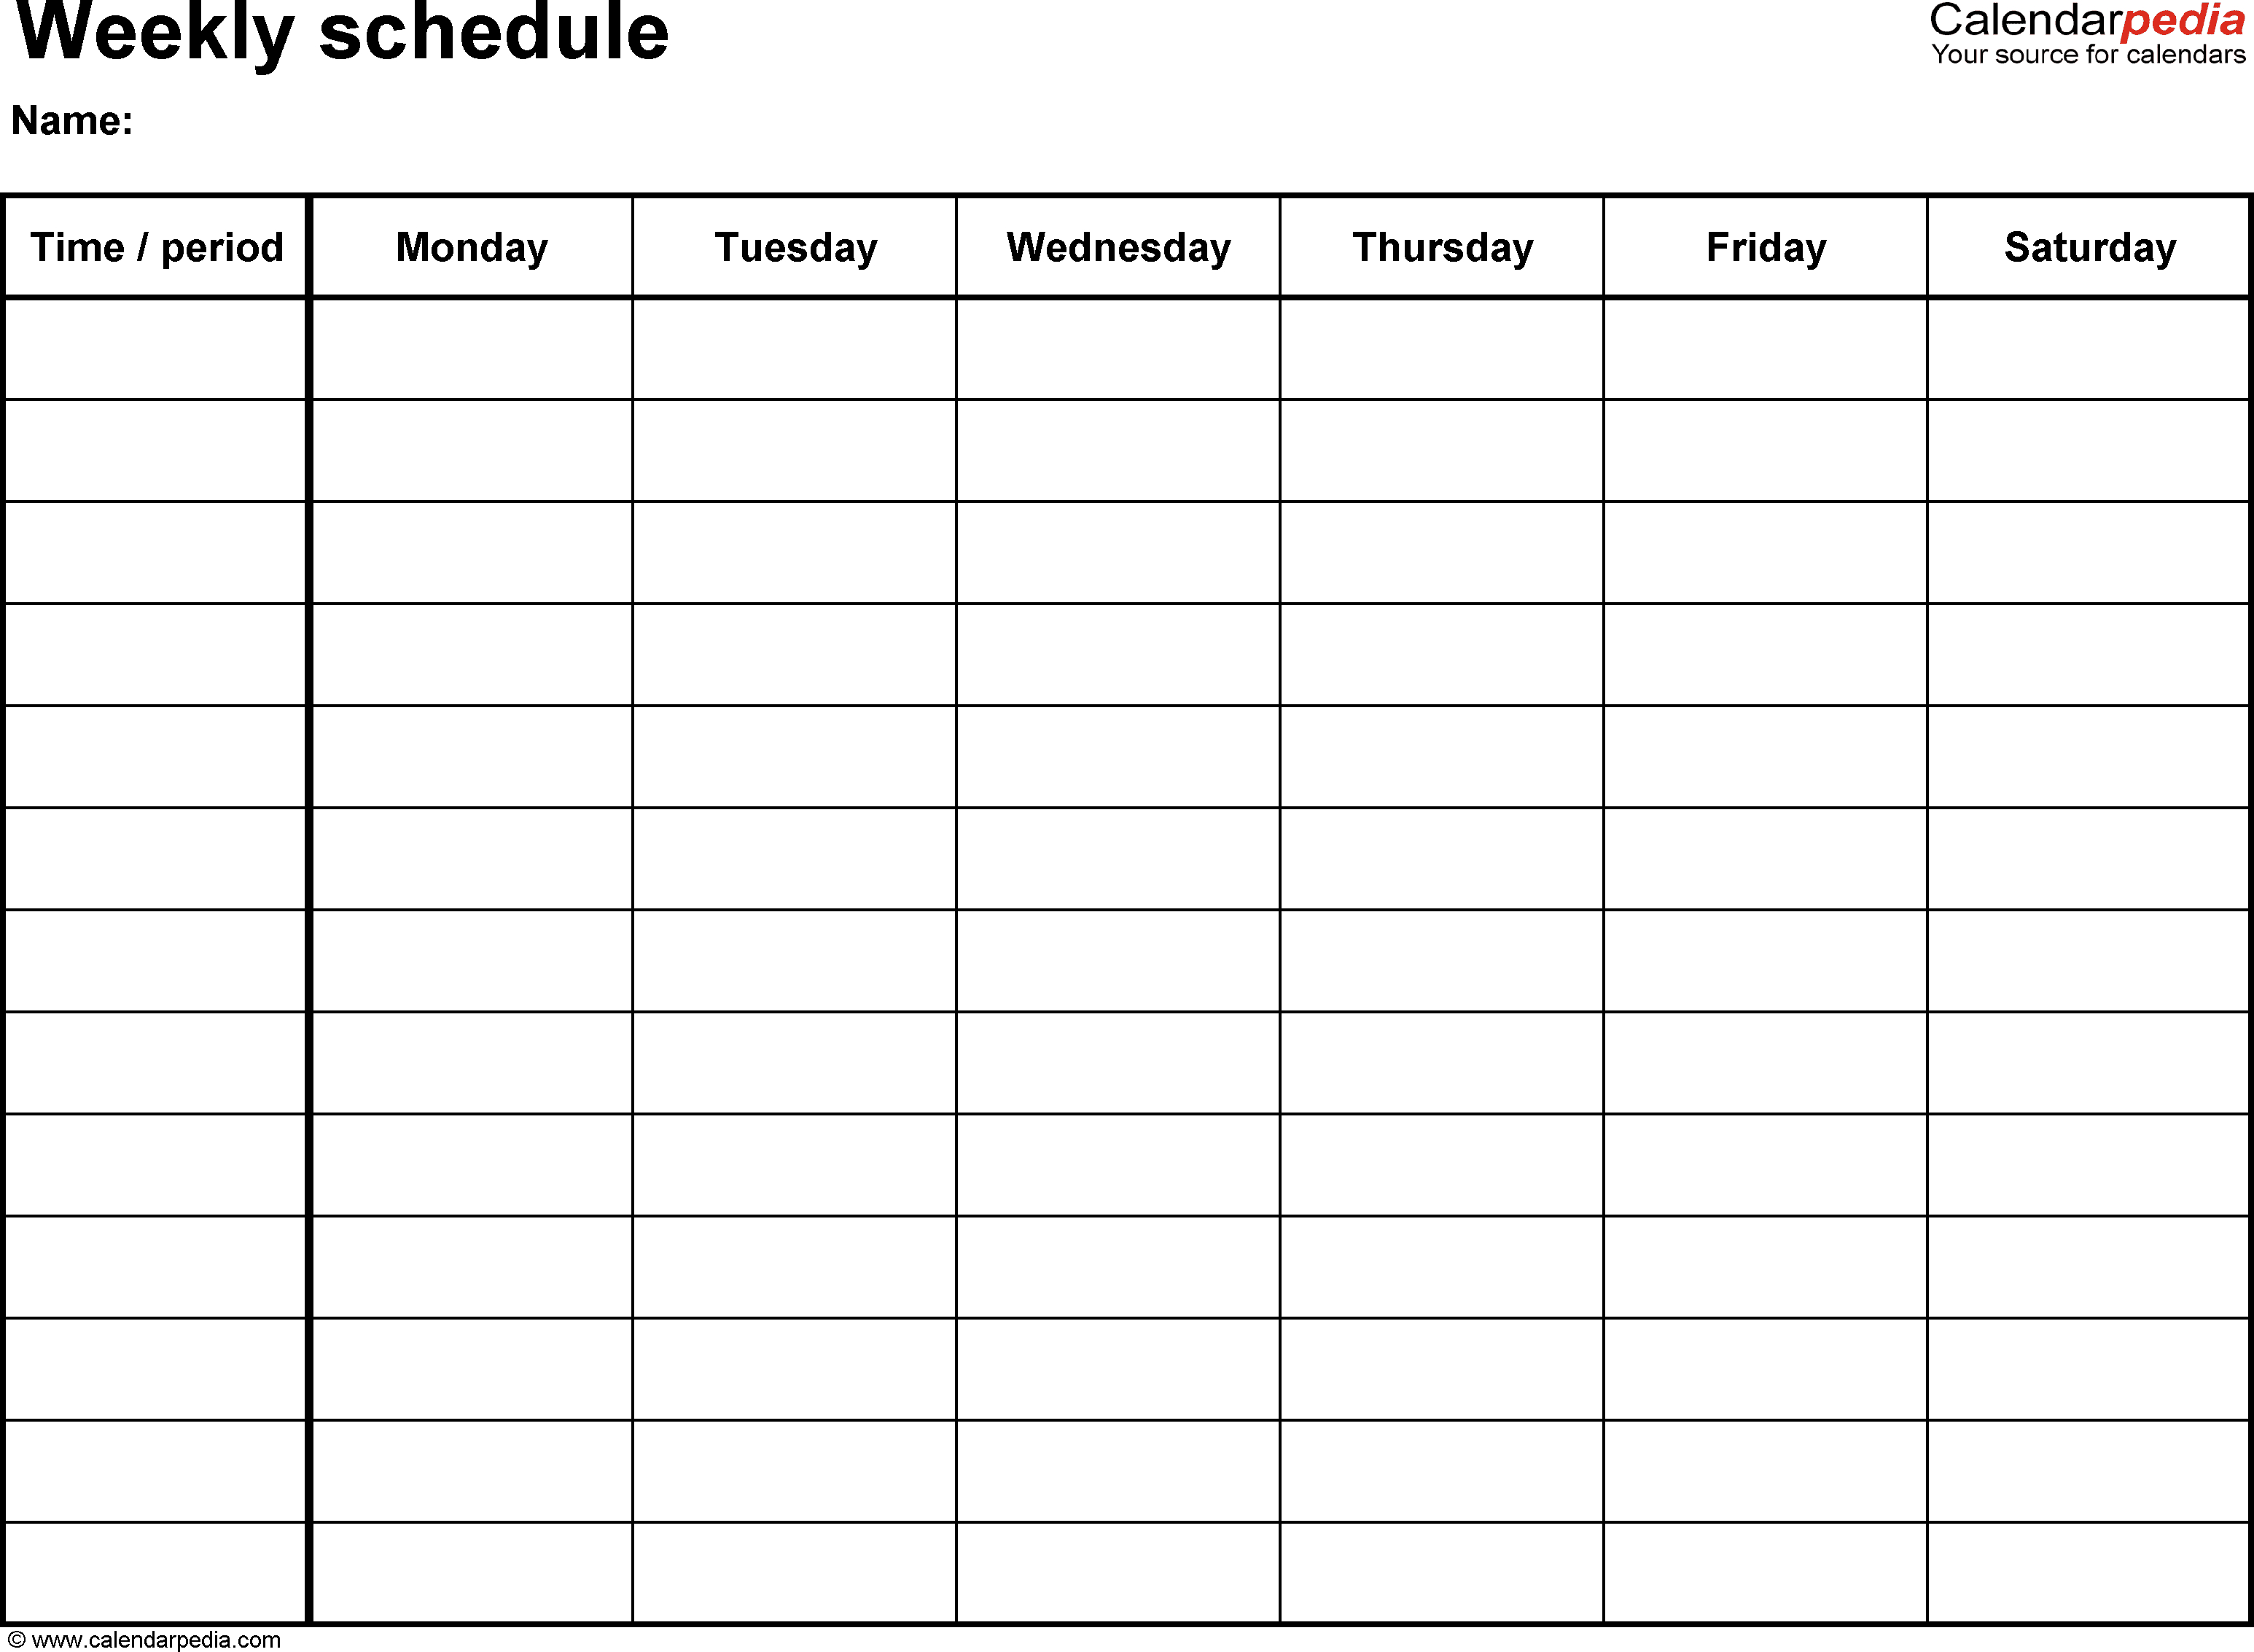 Free Weekly Schedule Templates For Pdf - 18 Templates within Printable Monthly Calendar Planner Template